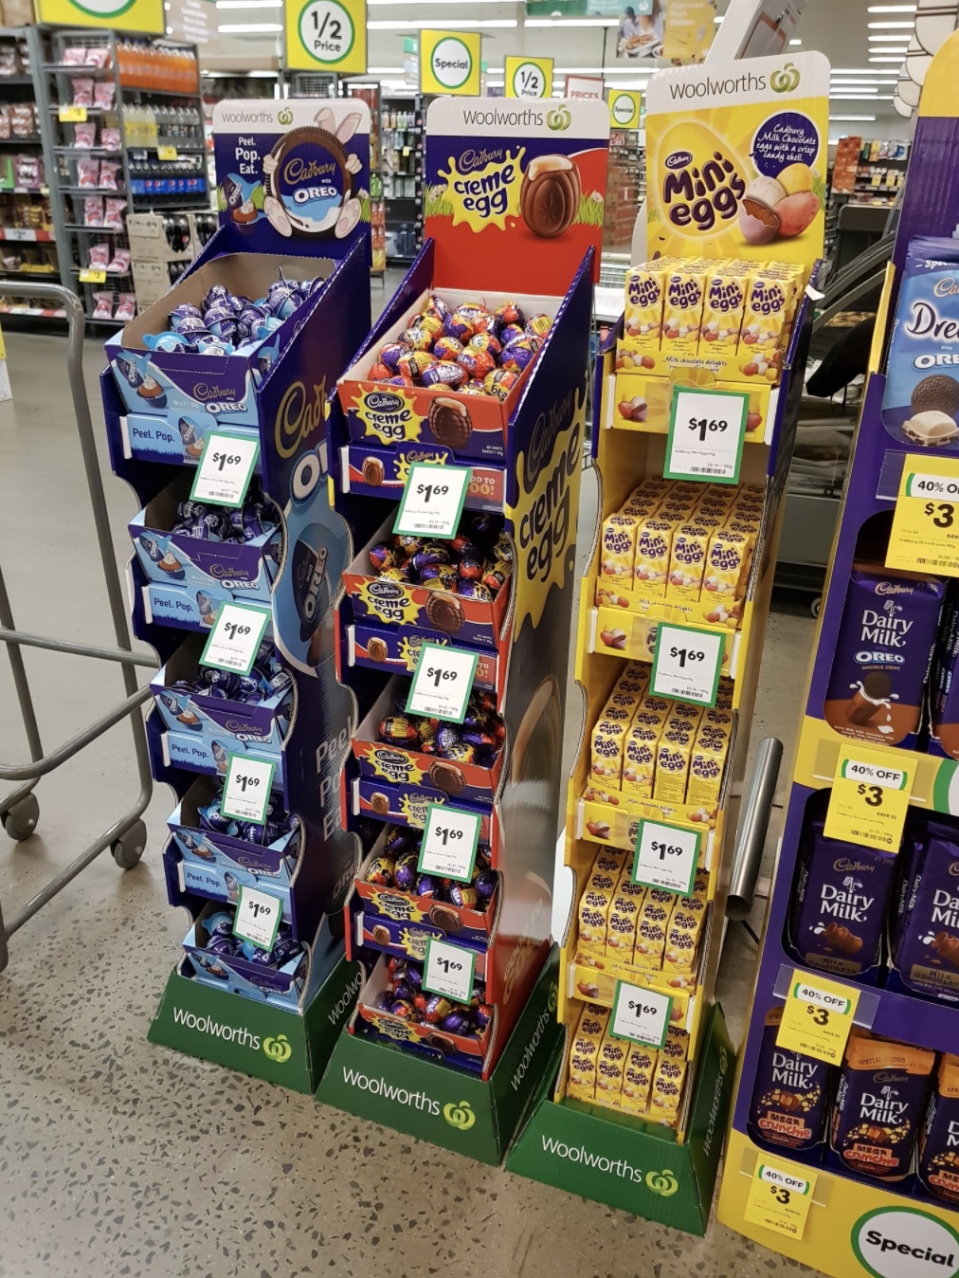 Photo shows Easter eggs for sale in a display at a Woolworths supermarket.